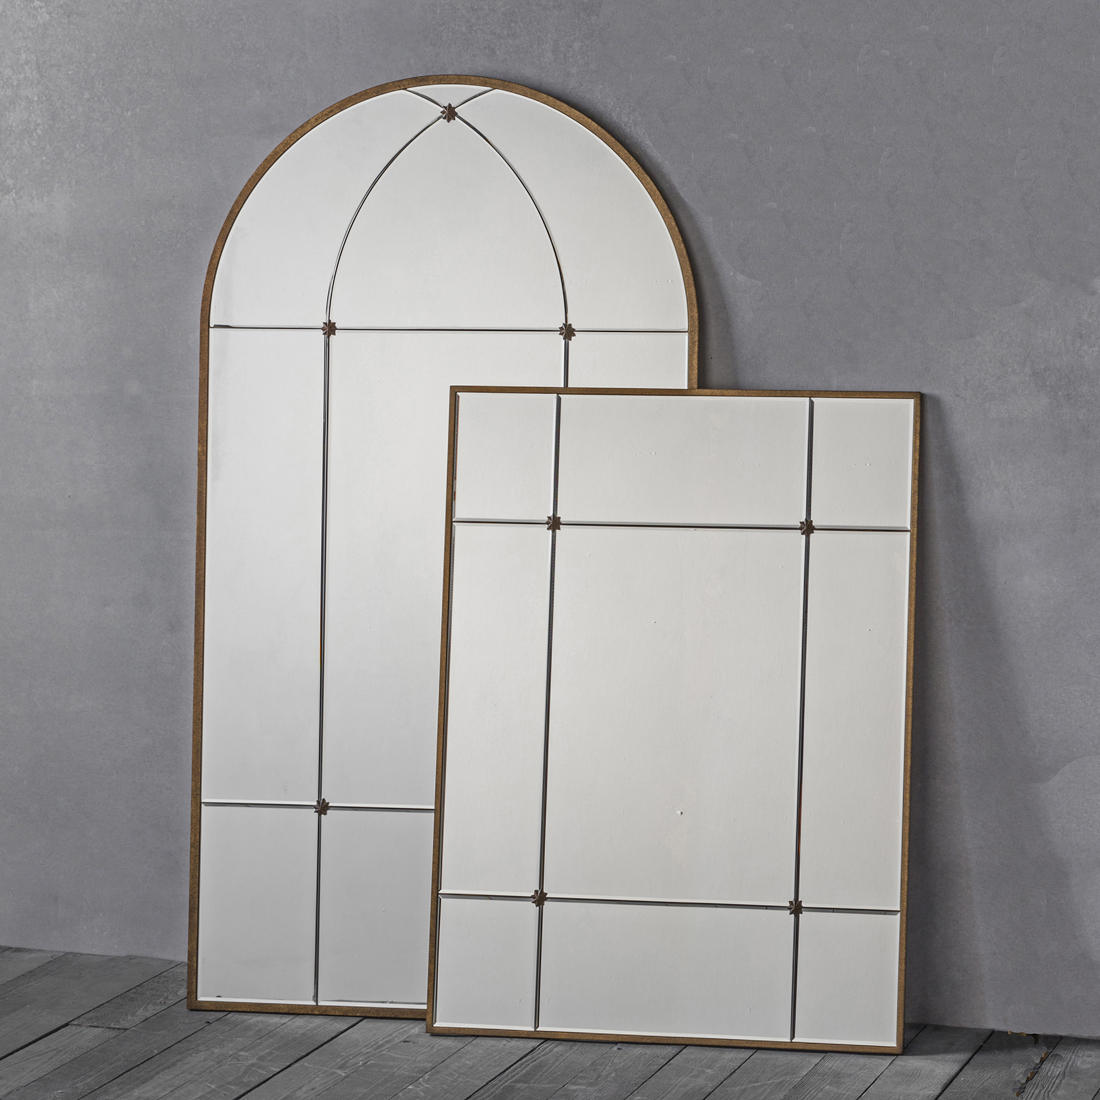 Gold Window Wall Mirror – Arch Or Rectangle Throughout Wall Mirrors (View 15 of 20)